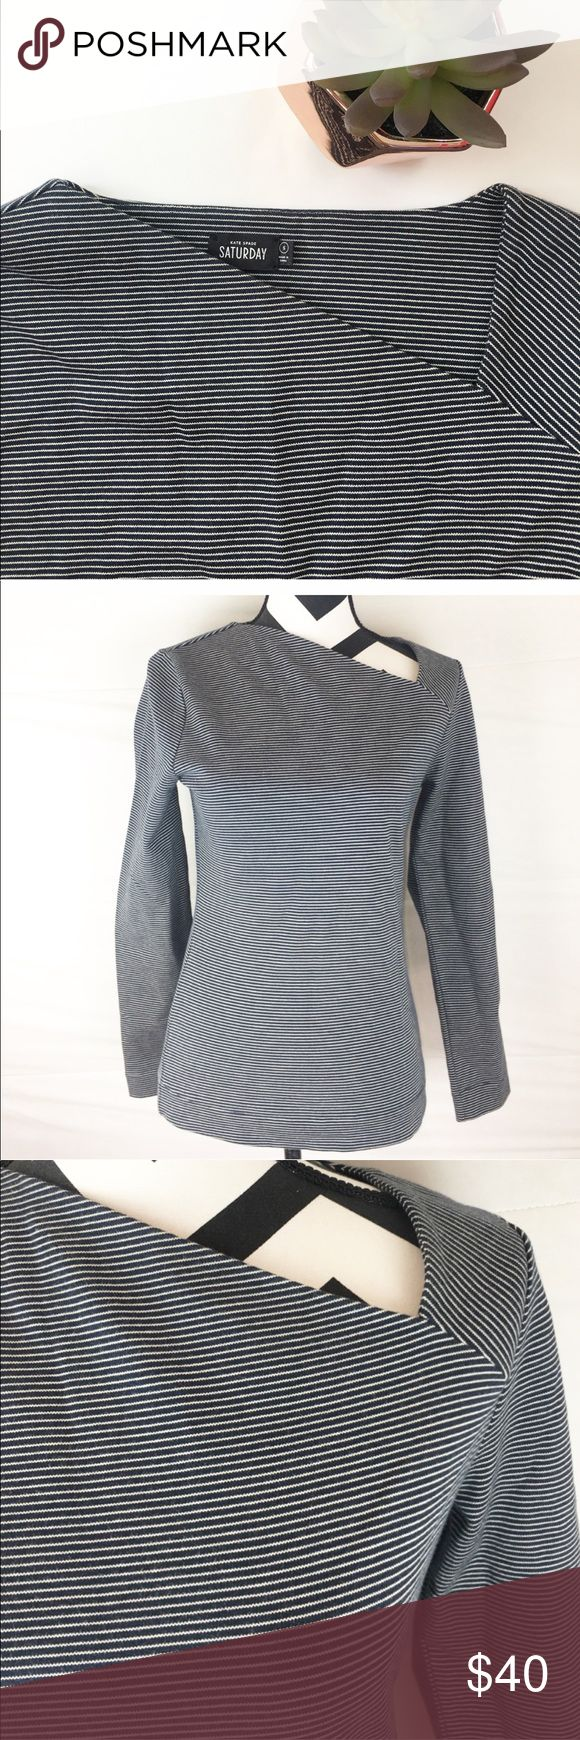 Kate Spade Saturday long sleeves top ♠️ Kate Spade Saturday NWT long sleeve top. Striped. White thin lines dark navy. Neckline goes across for design. Very pretty. 100% cotton ♠️ kate spade Tops Tees - Long Sleeve